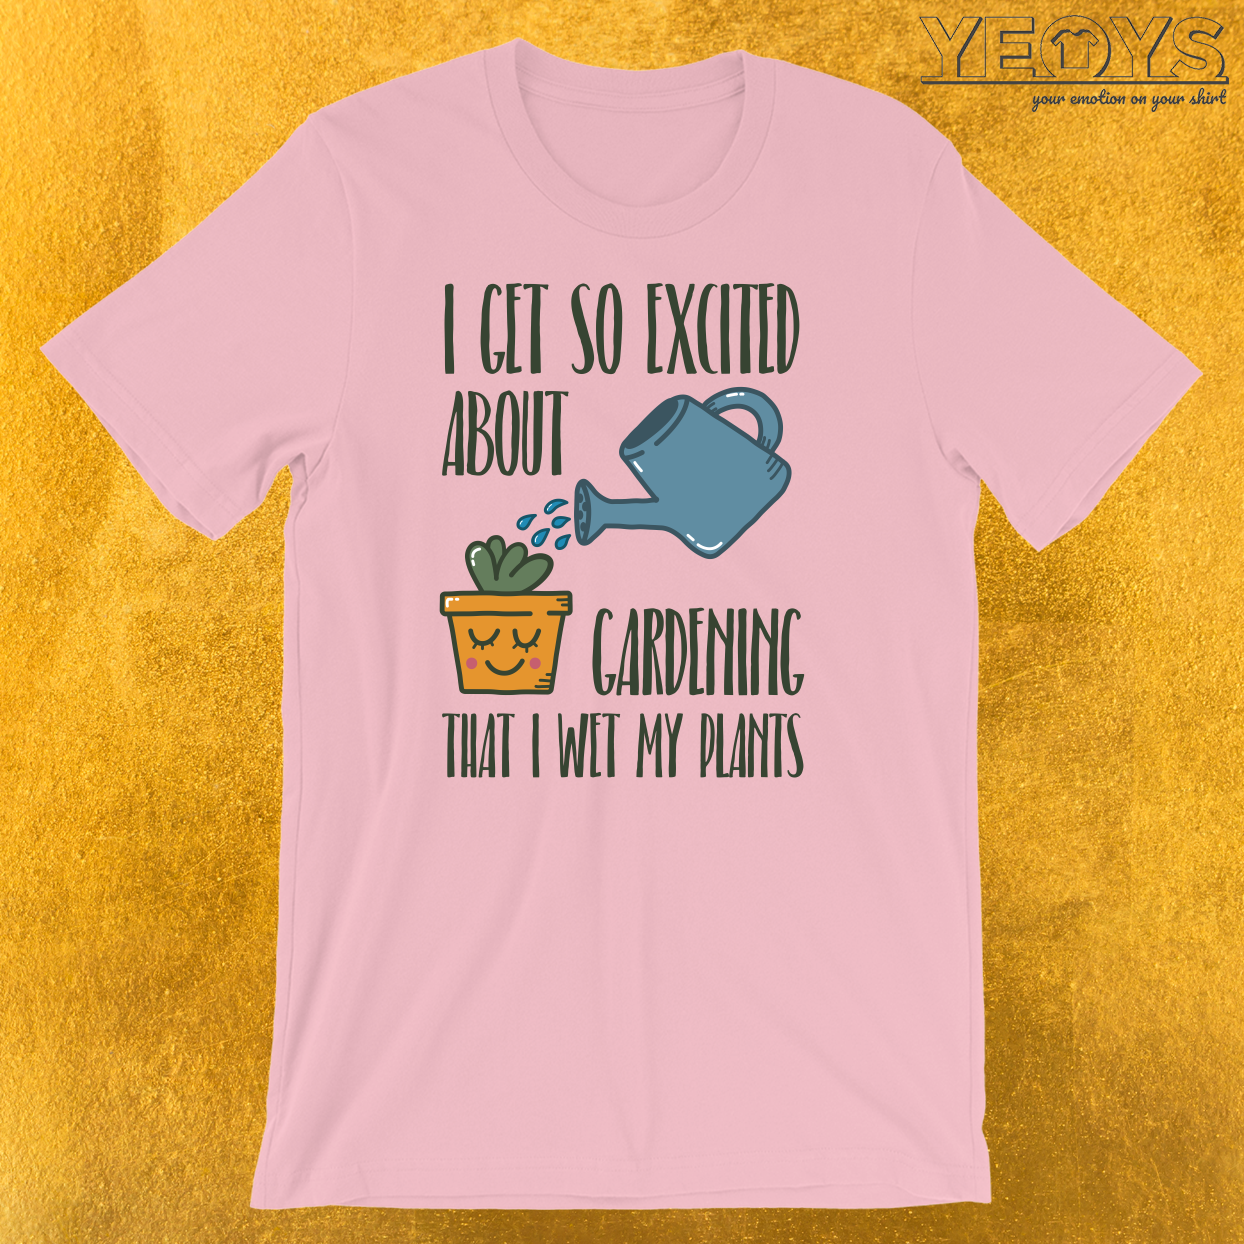 I Get So Excited About Gardening T-Shirt